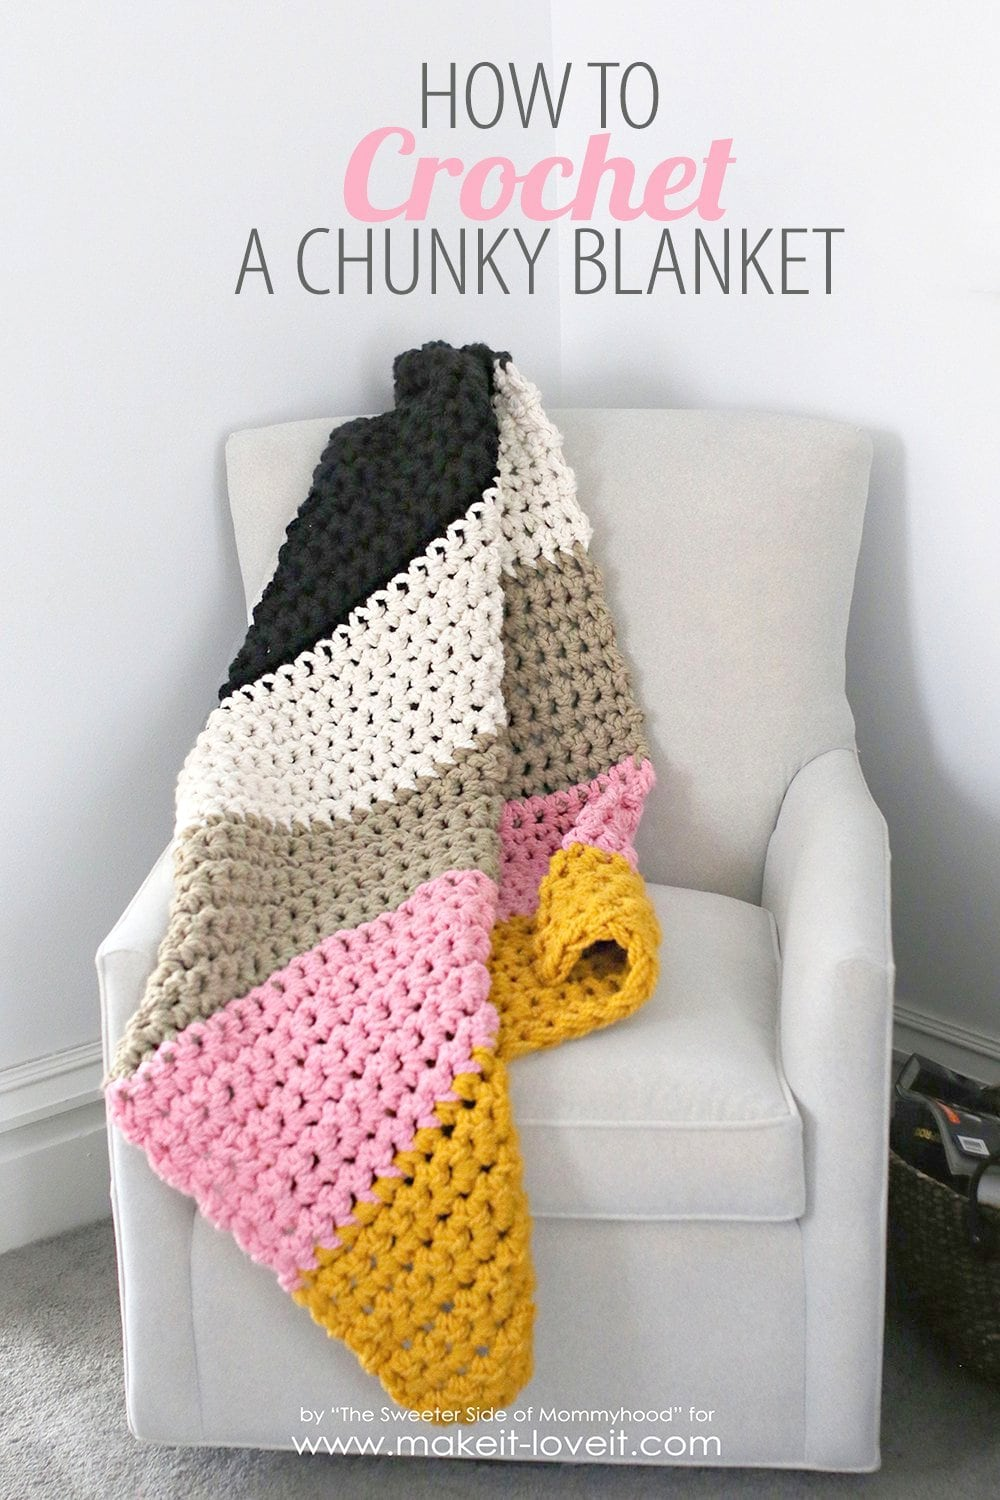 Crochet Chunky Blanket via Make It-Love It